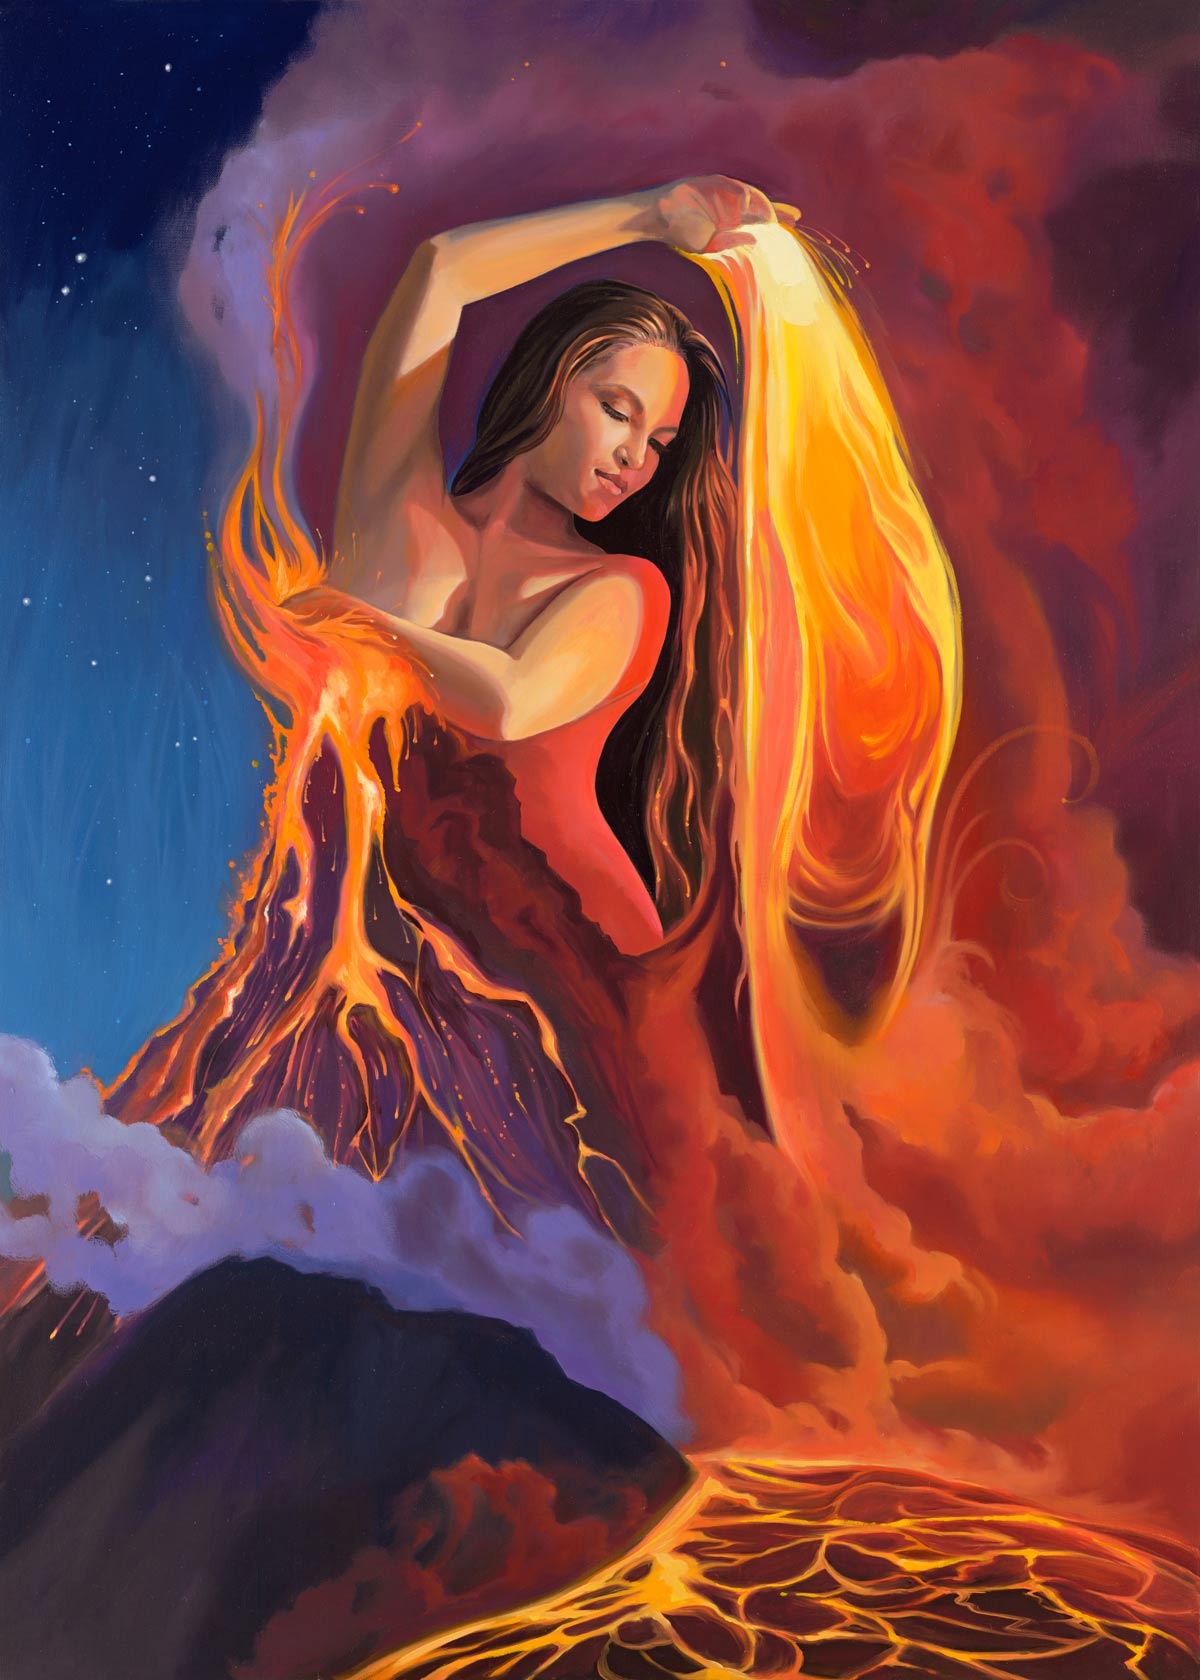 christina-dehoff-fire-dance